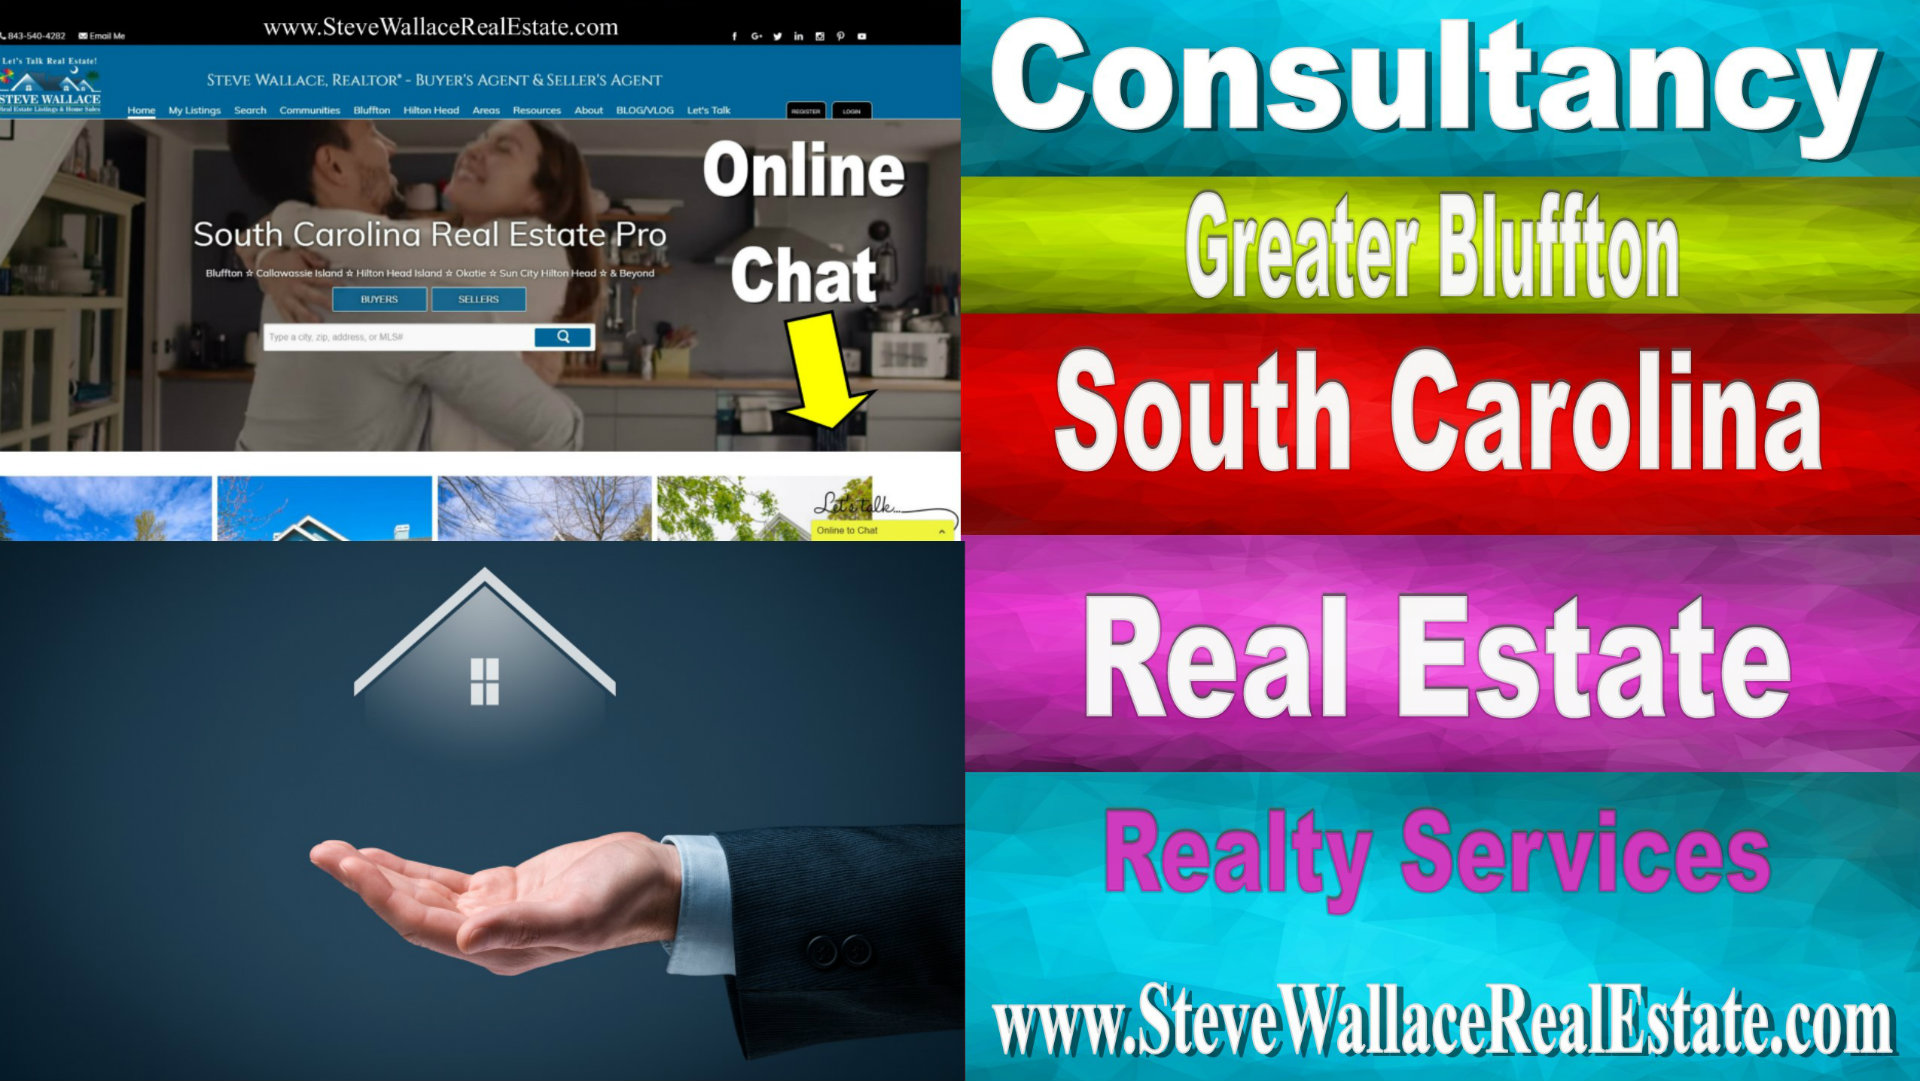 South Carolina, Realty, Consultancy, Real Estate, Homes for Sale, Steve Wallace